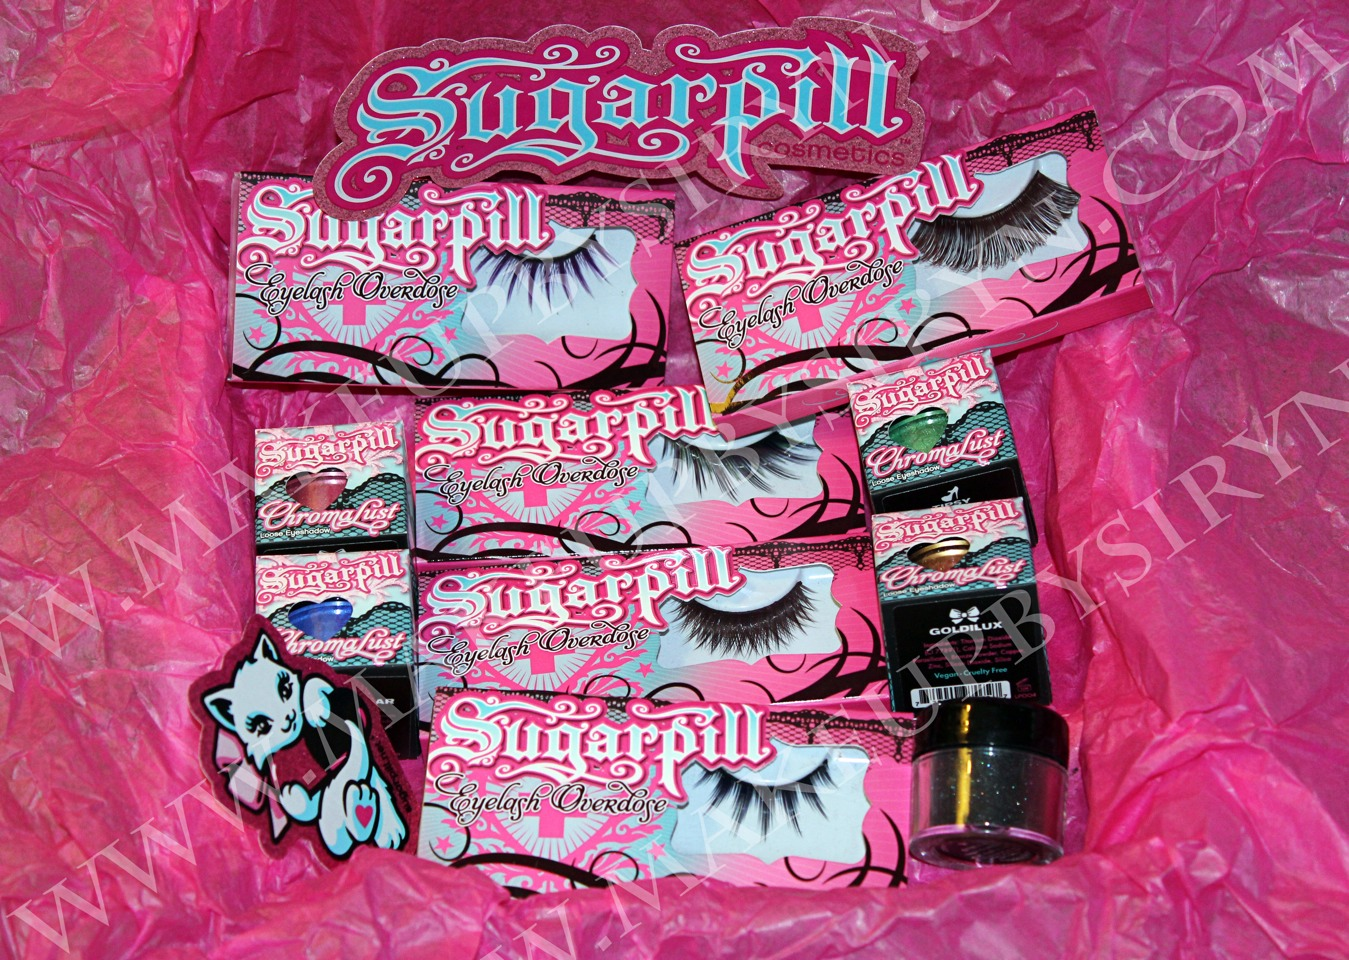 10: Sugarpill False Lashes | $7–$9 shop it | Sometimes you just need a little drama. Sugarpill's falsies come in daring, pretty shapes that you won't quite find anywhere else.